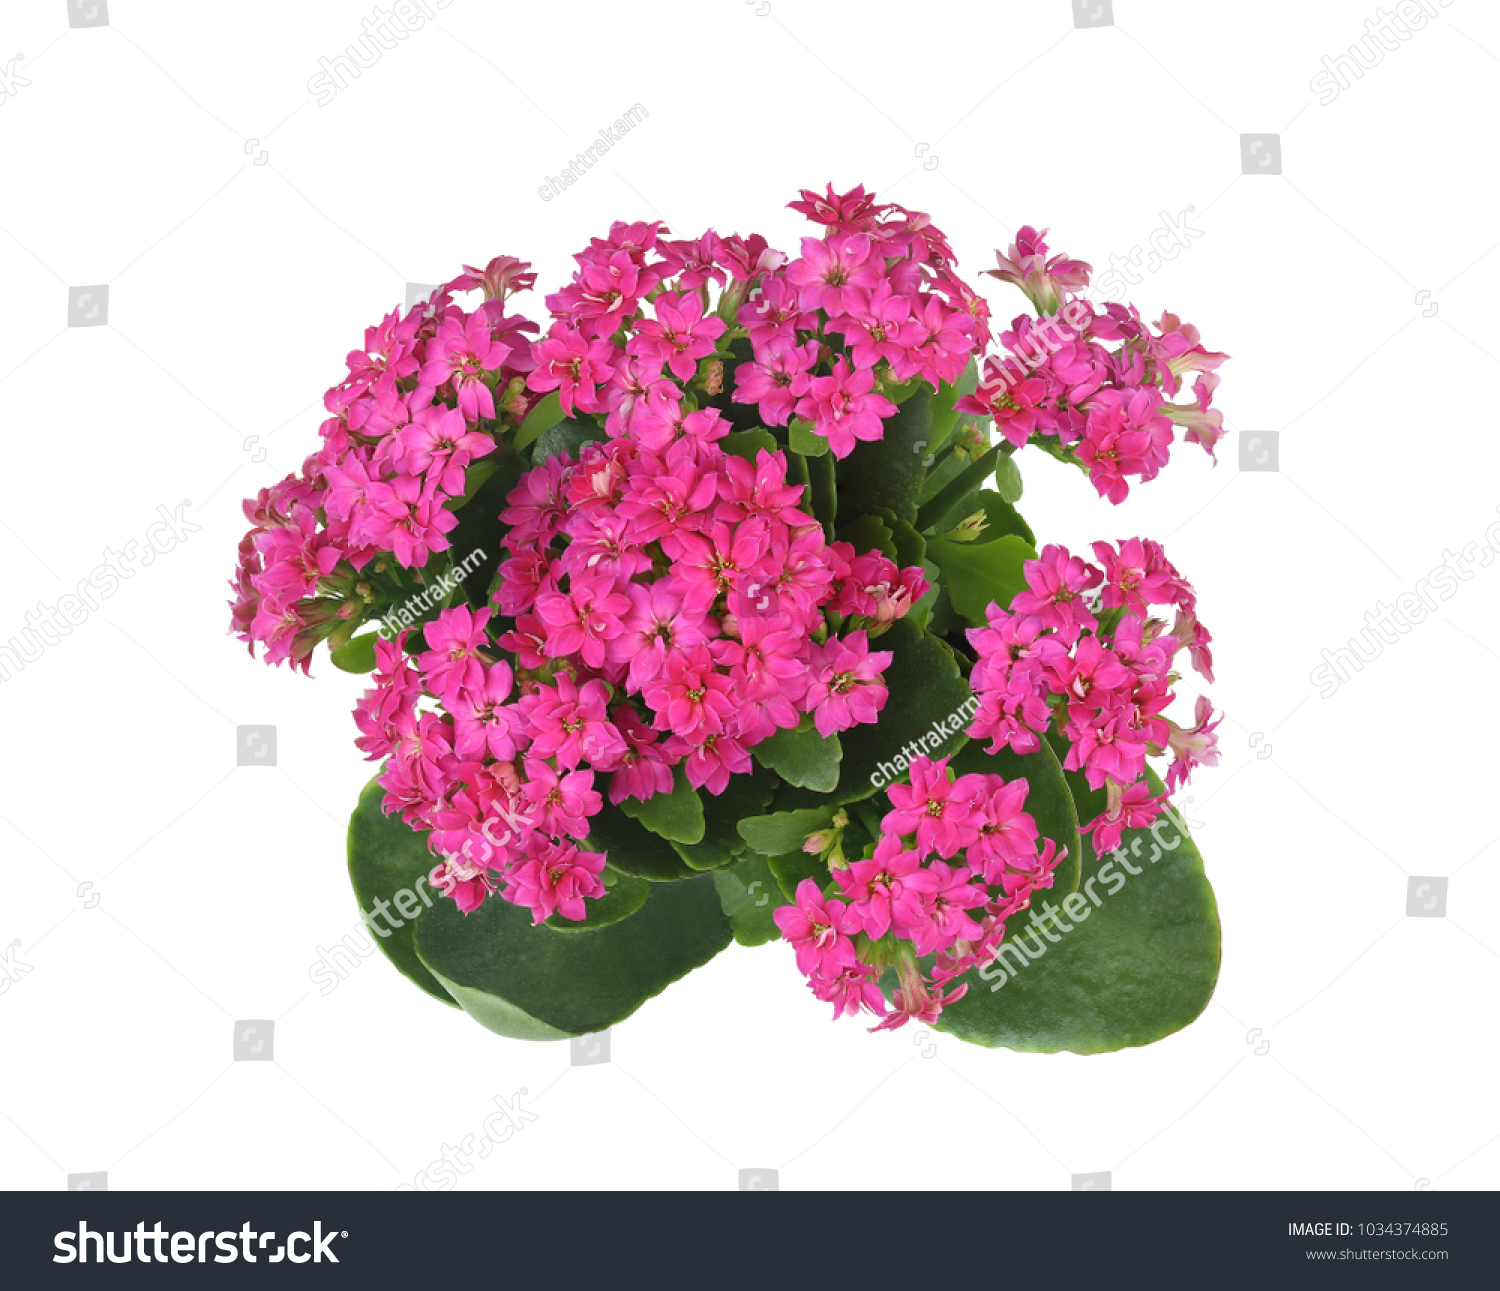 Top view purple kalanchoe flower house stock photo 100 legal top view of purple kalanchoe flower house plants isolated on white this has clipping mightylinksfo